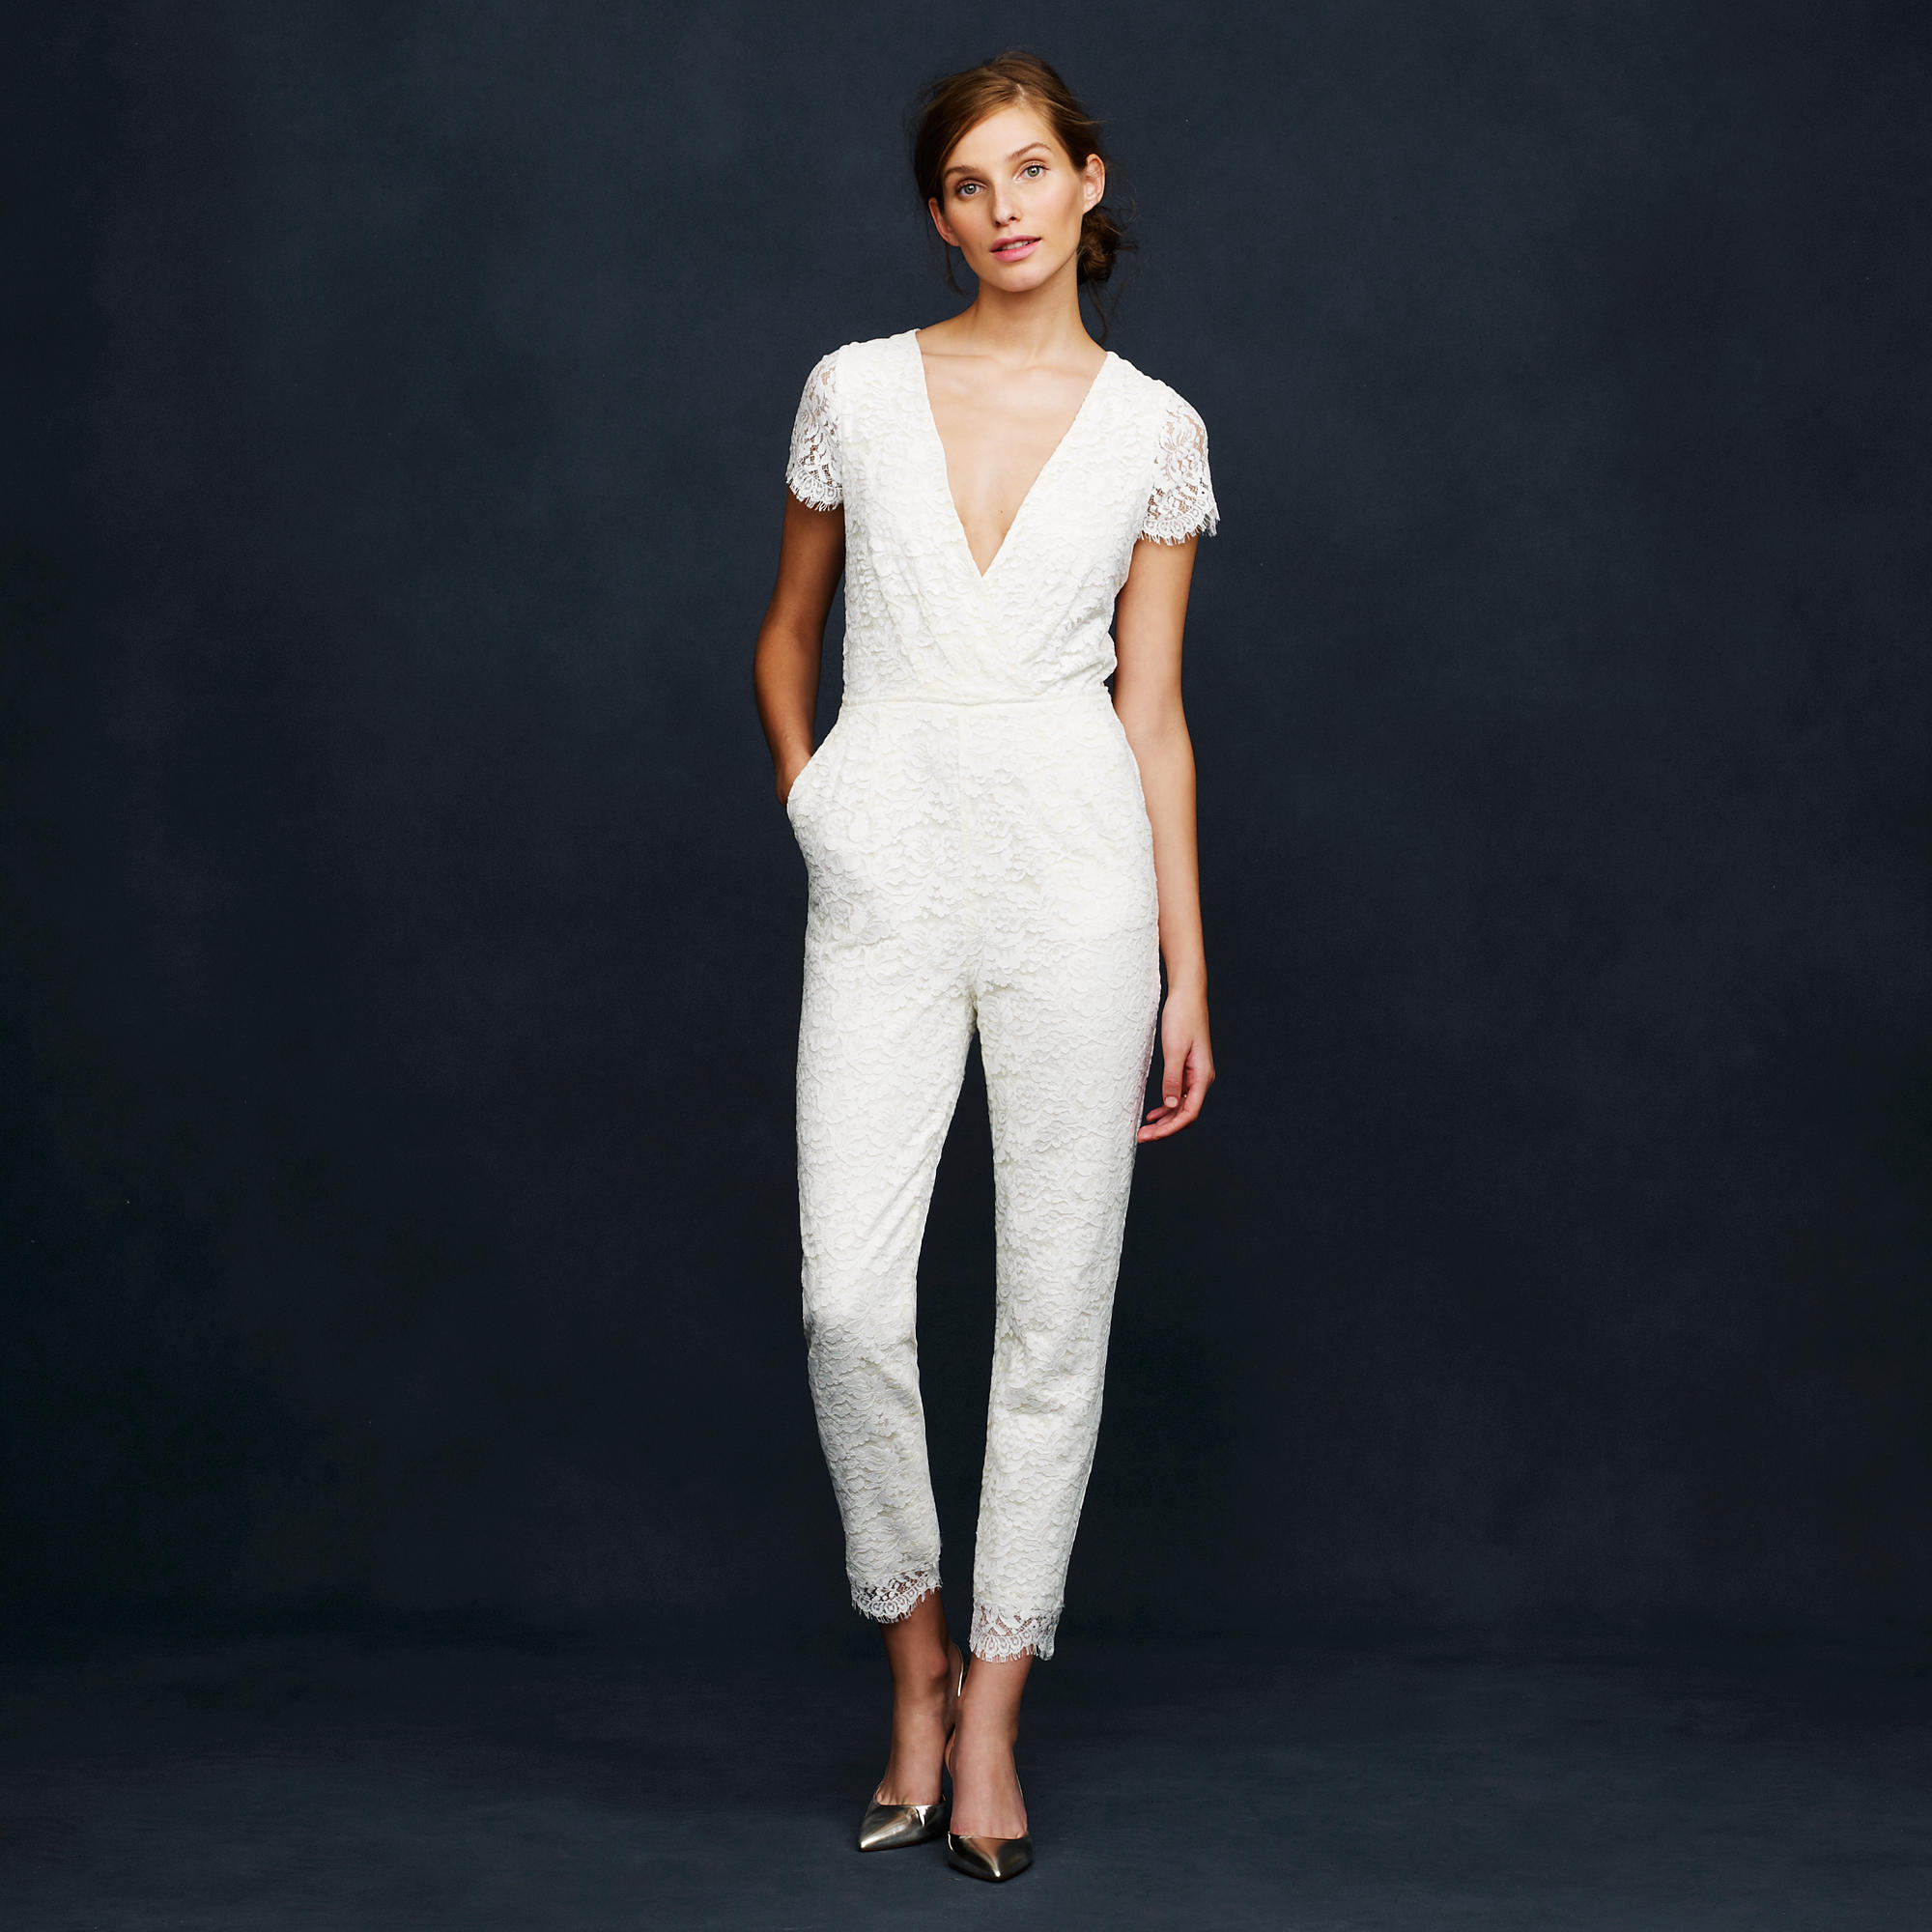 Jumpsuits To Wear To A Wedding: The Best Bridal Jumpsuits For Alternative Wedding Inspiration